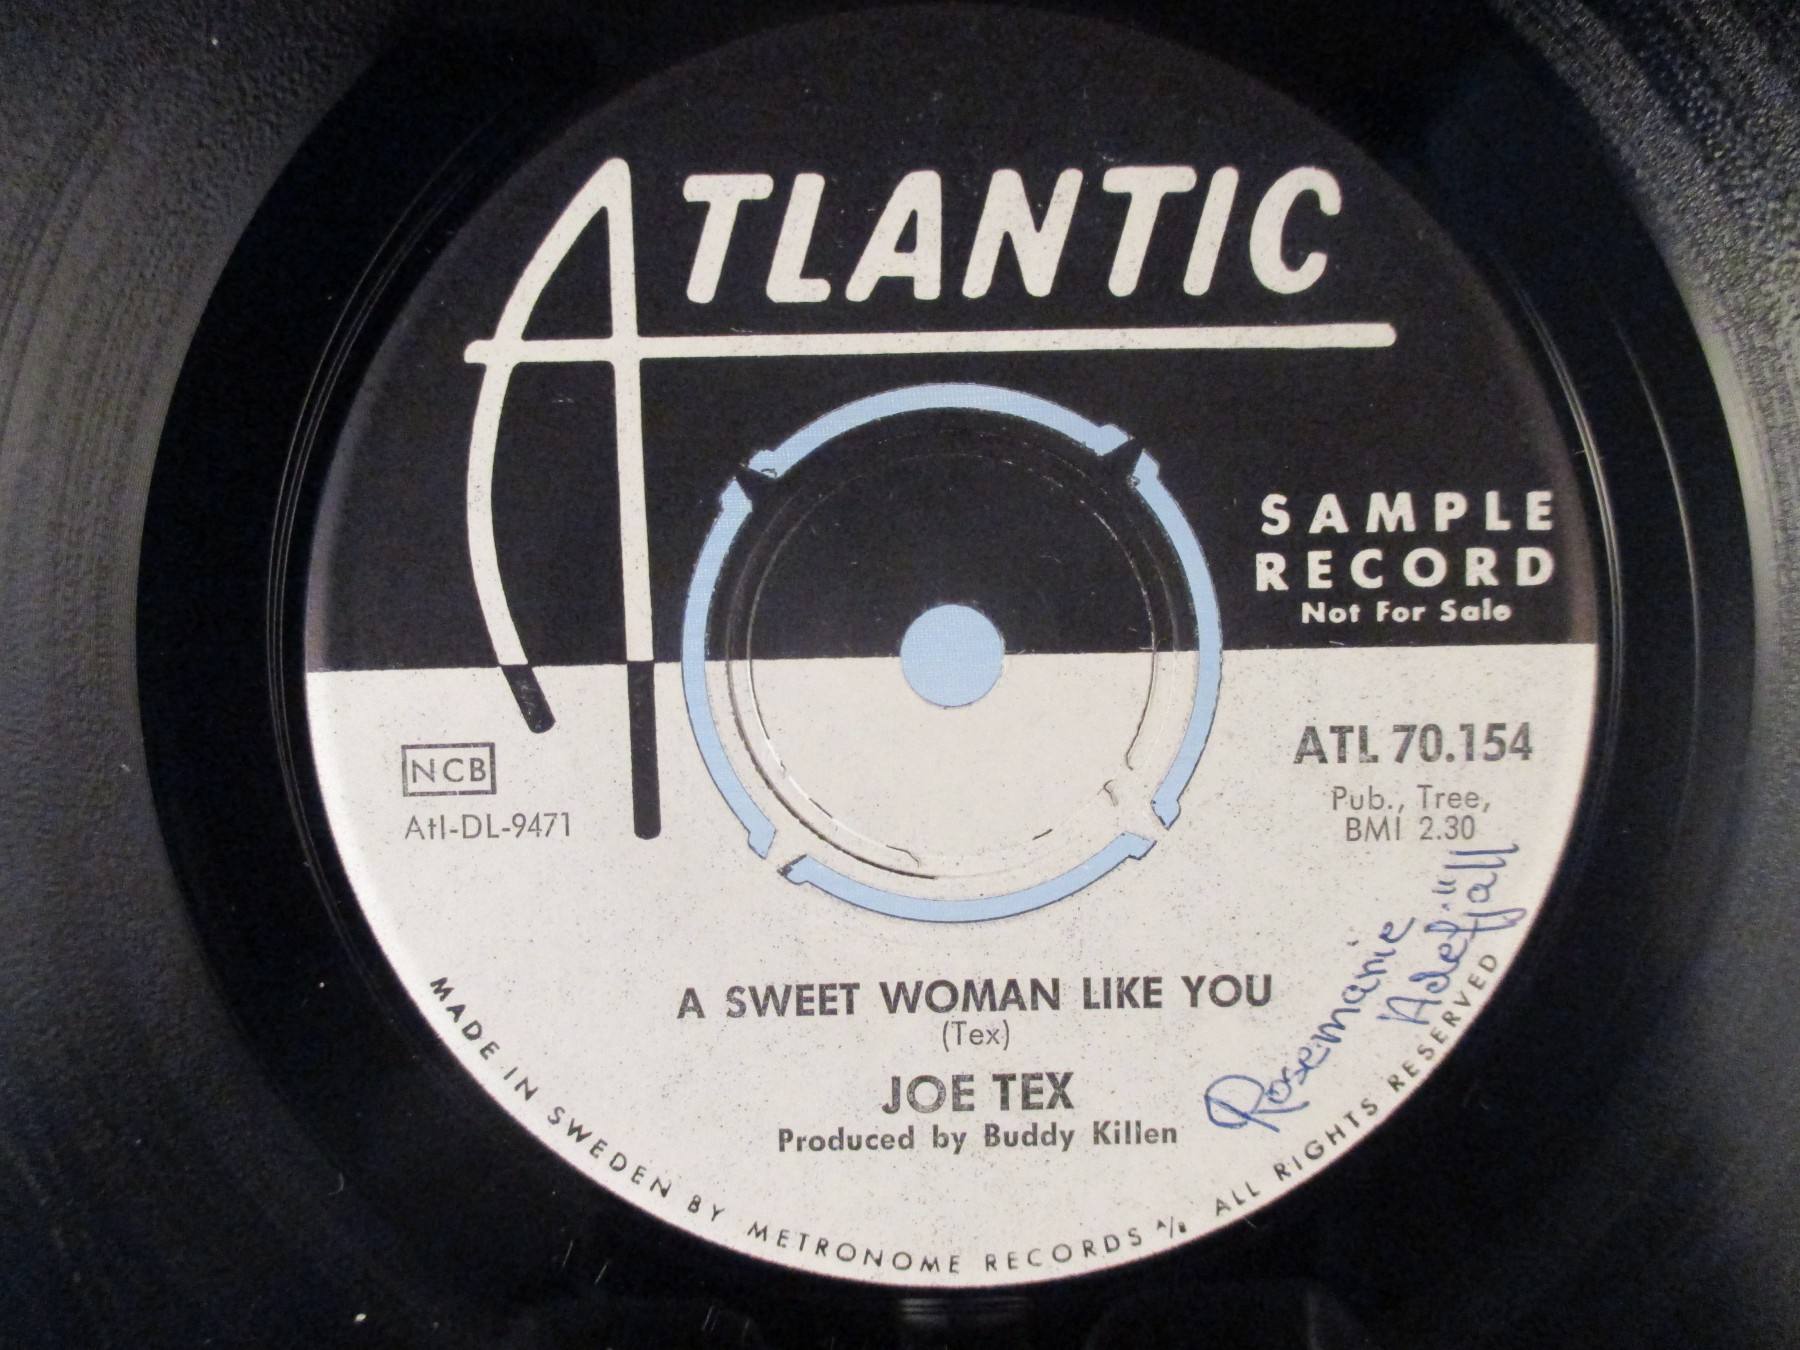 More Views & JOE TEX : A sweet woman like you / Close the door - View all Vinyl ... Pezcame.Com